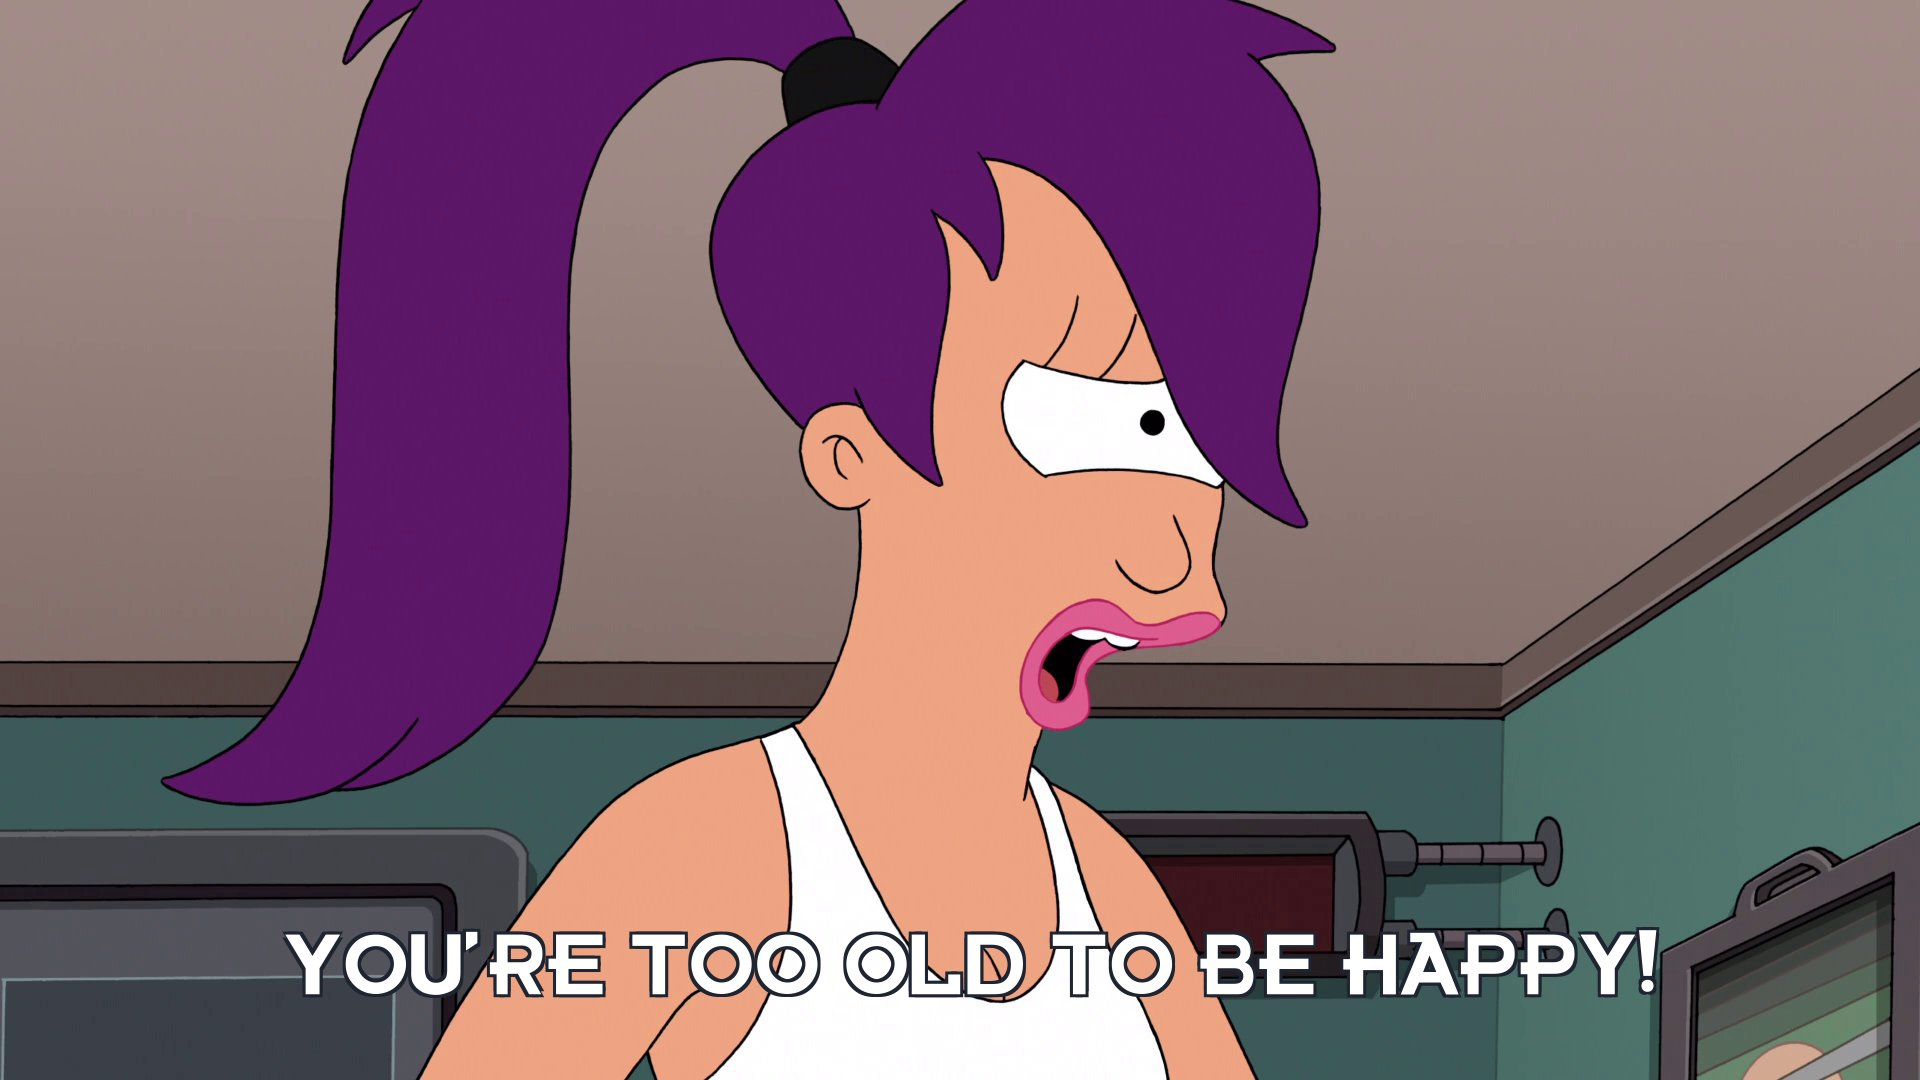 Turanga Leela: You're too old to be happy!